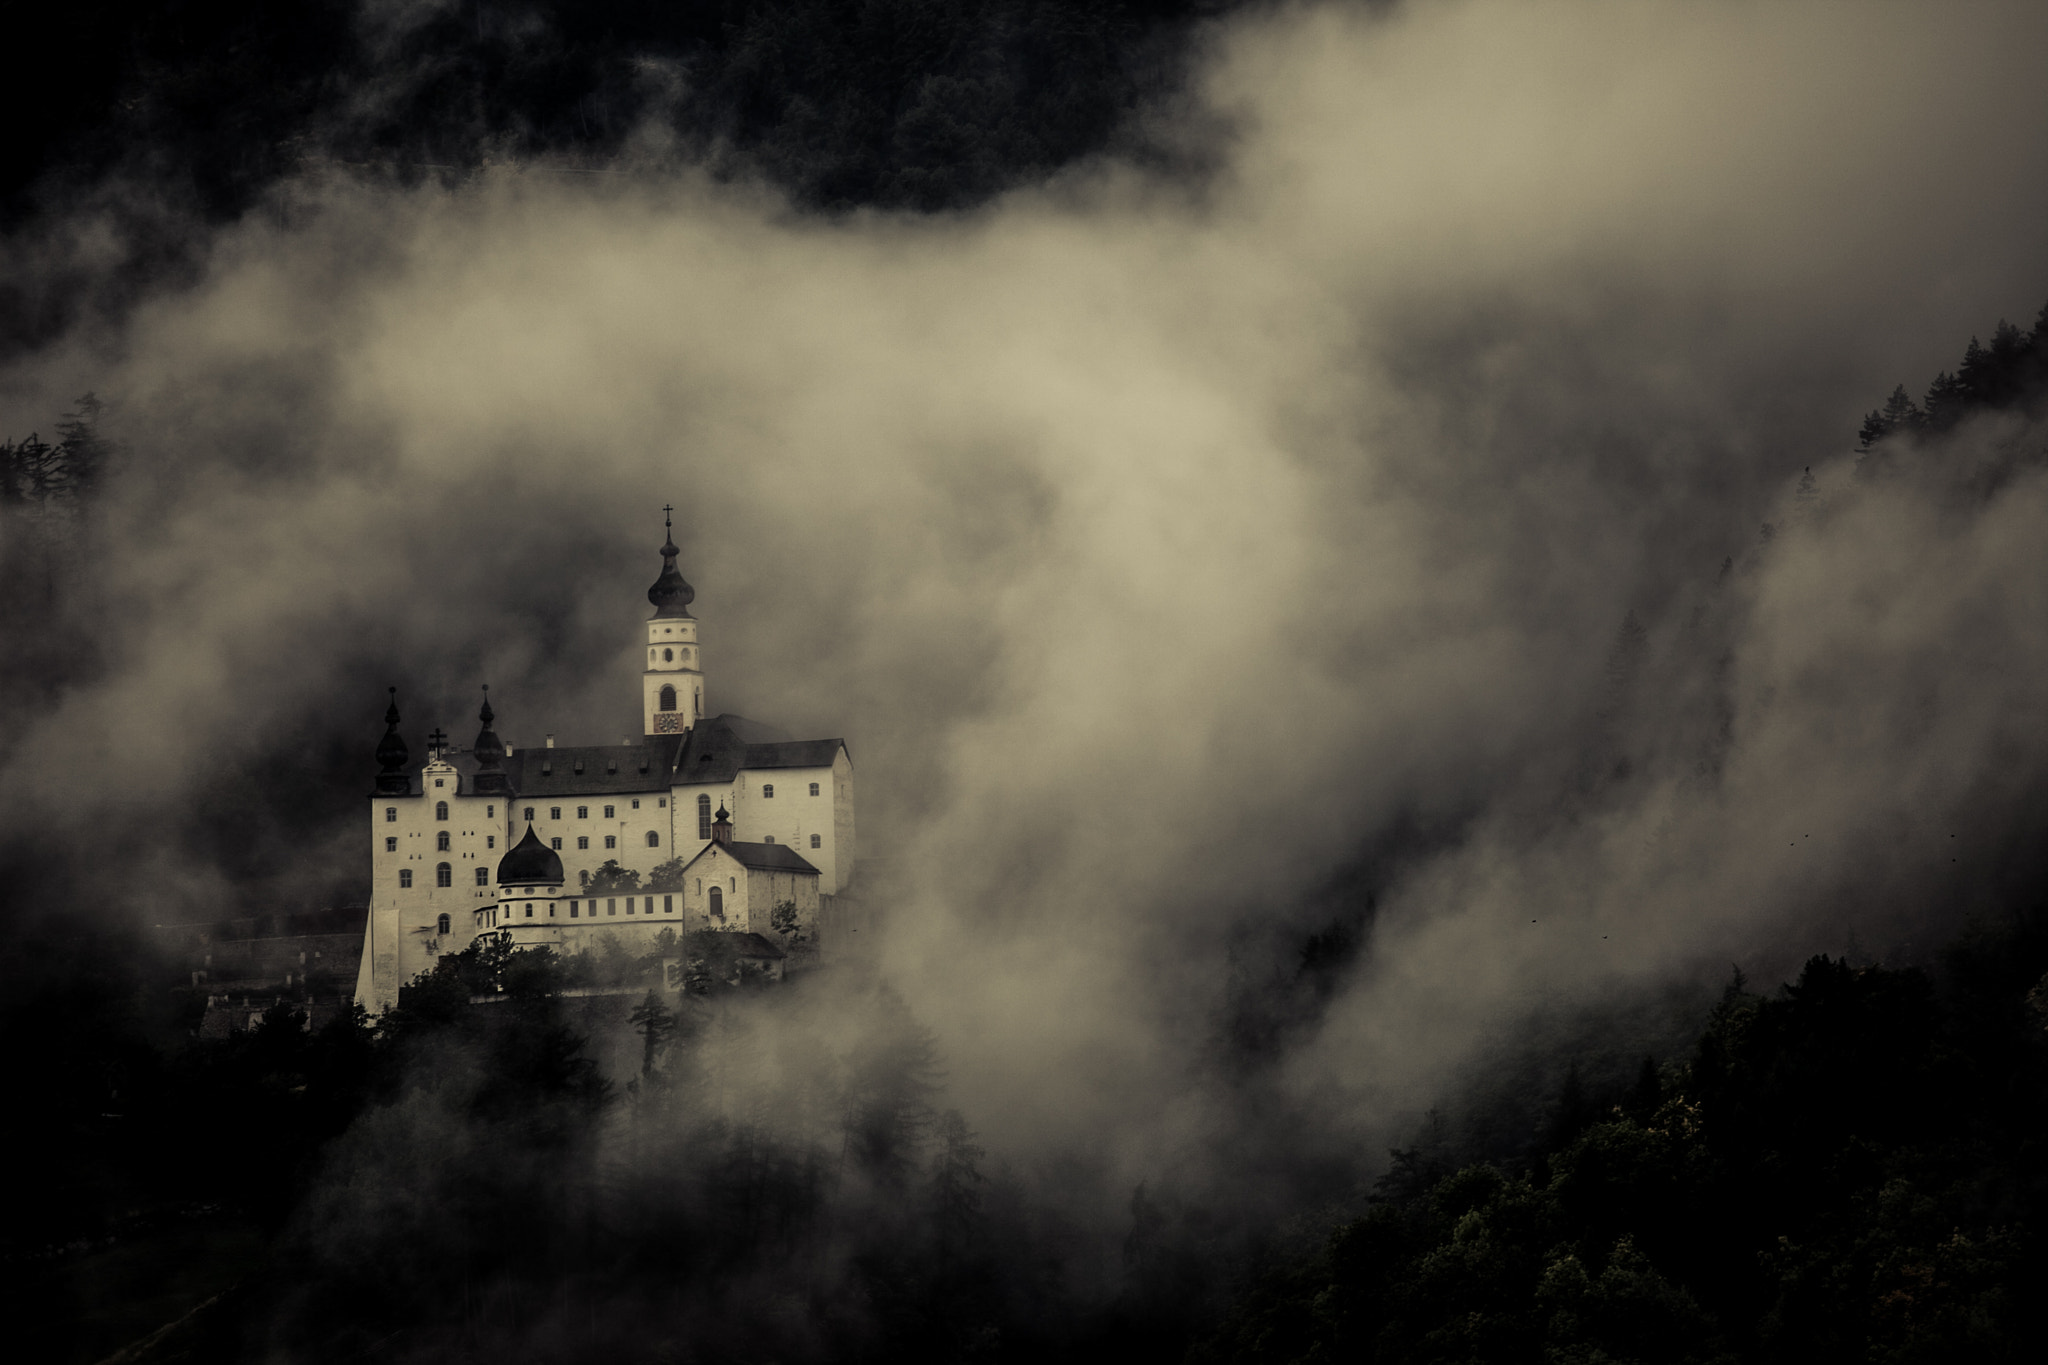 Photograph draculas castle by tom jahn on 500px